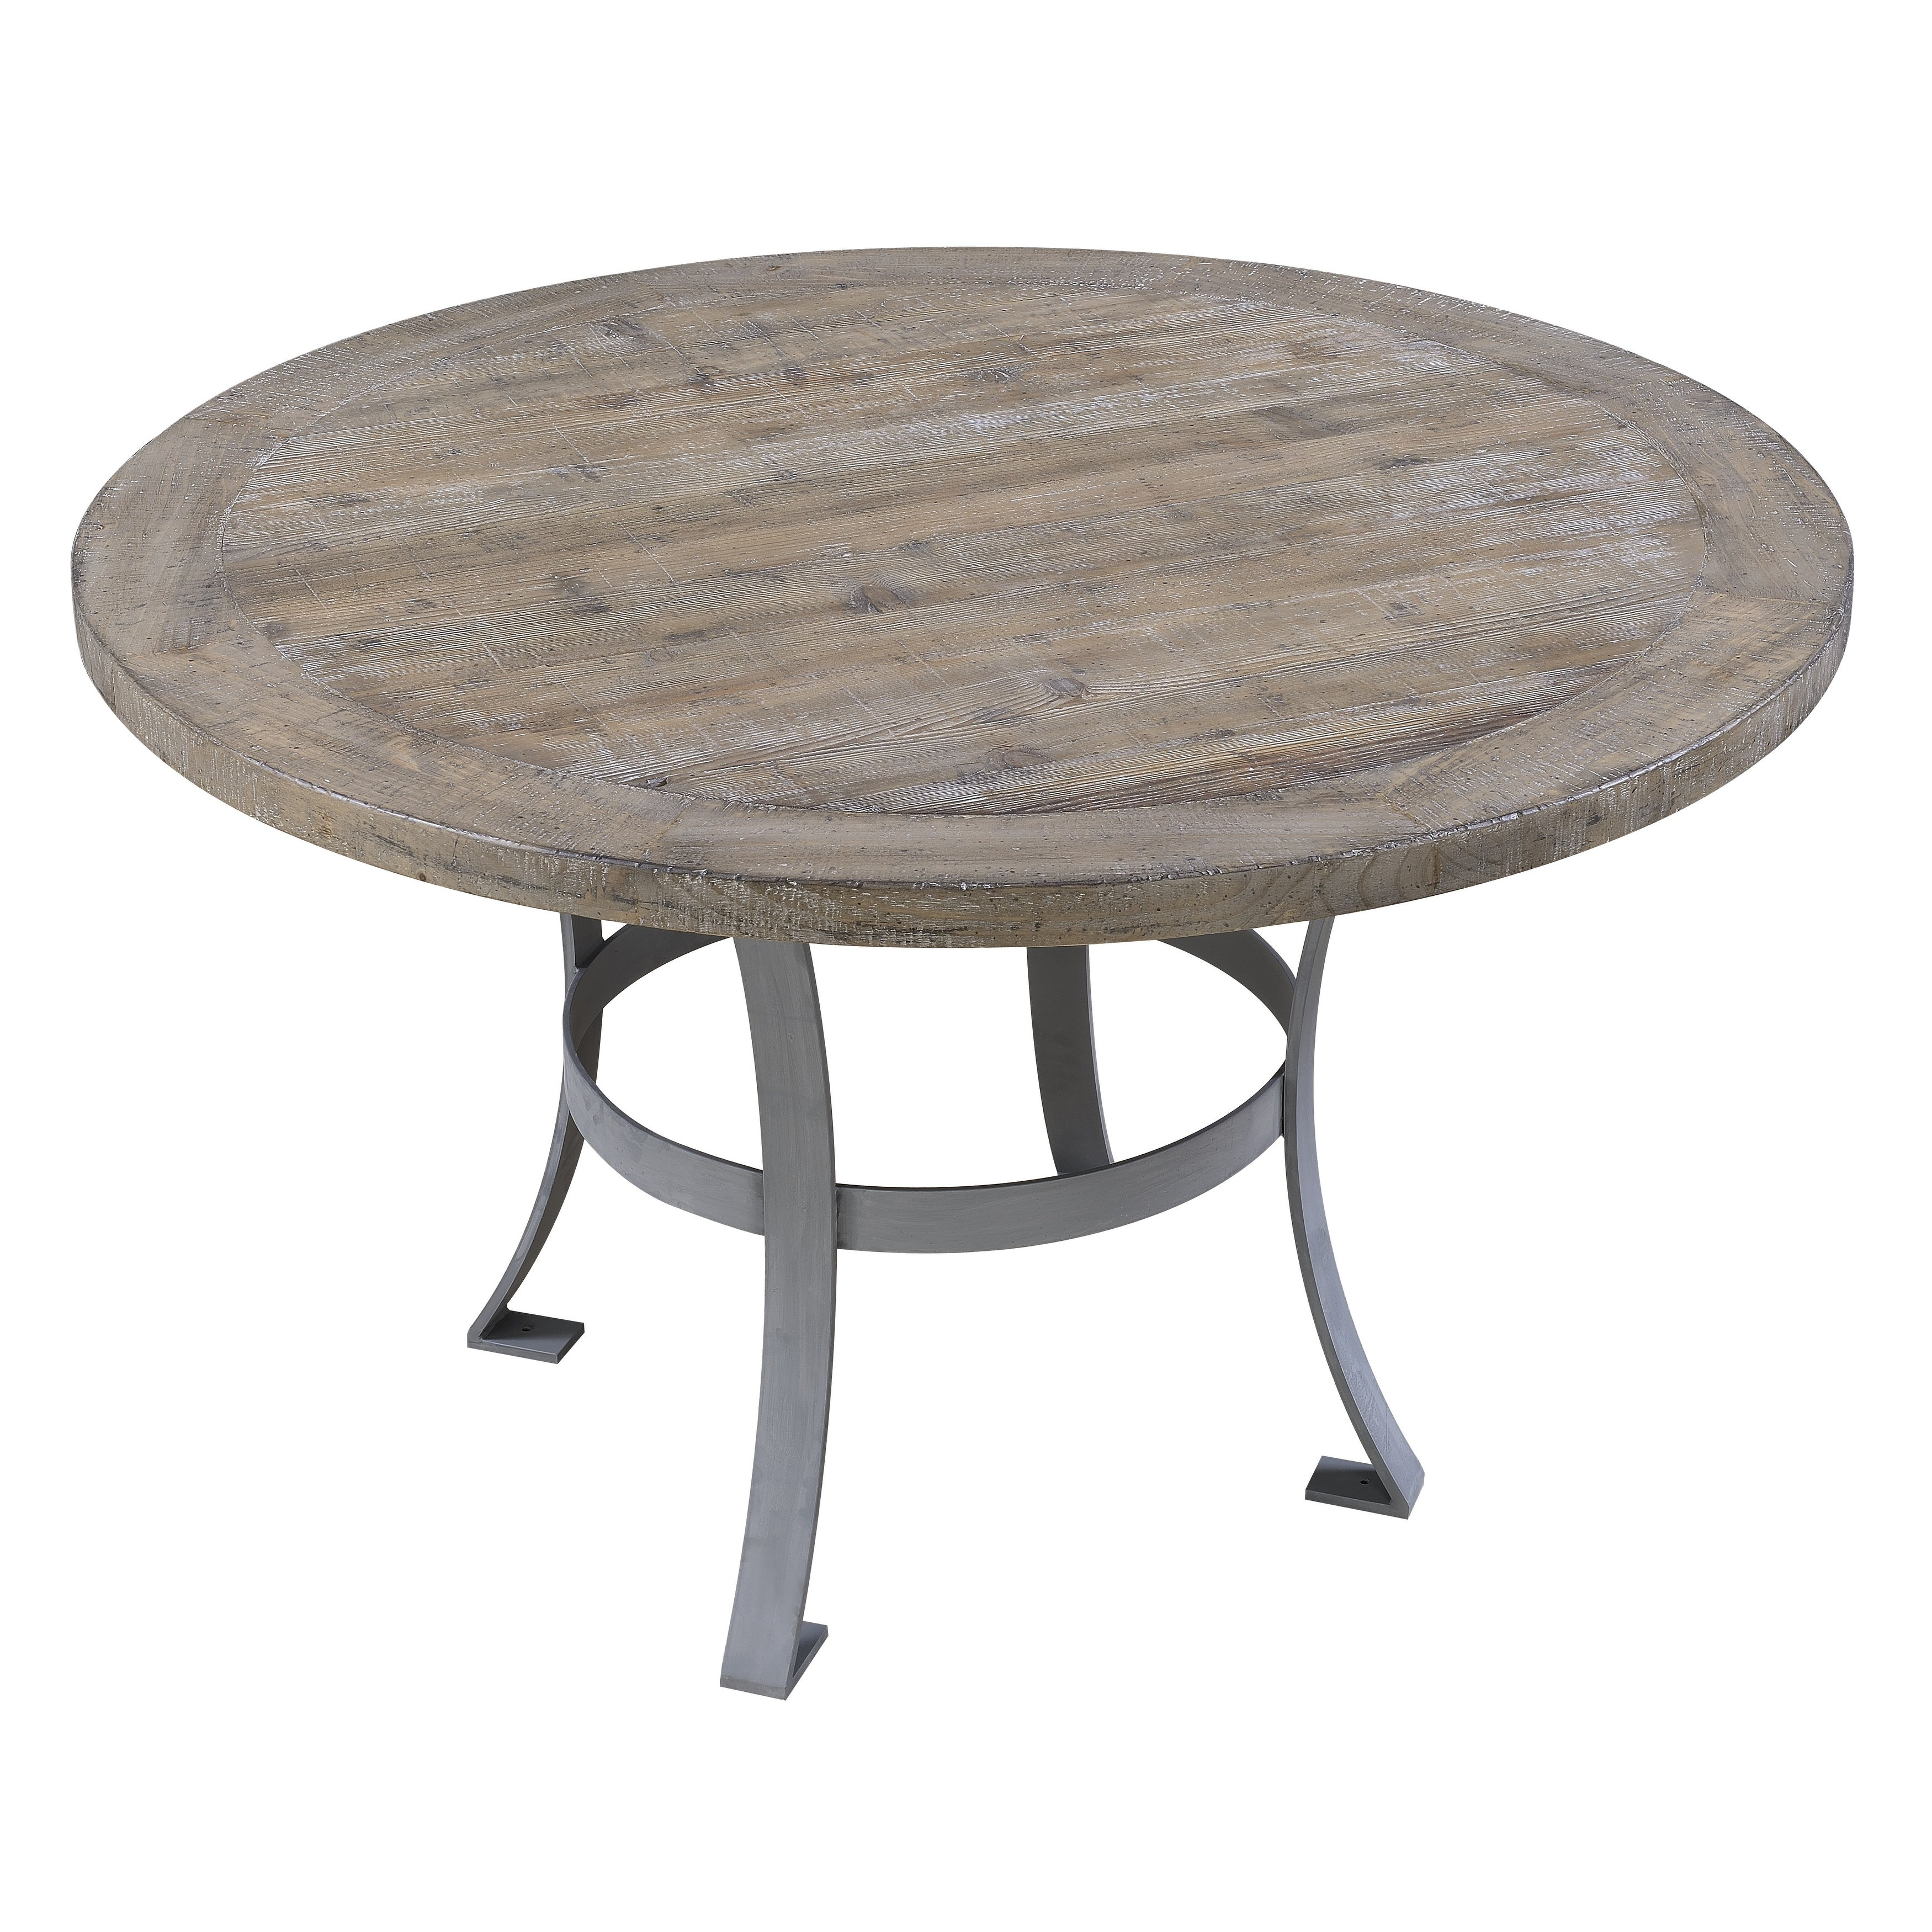 Shop The Gray Barn Sandstone Grey 54 Inch Round Dining Table Overstock 20338770